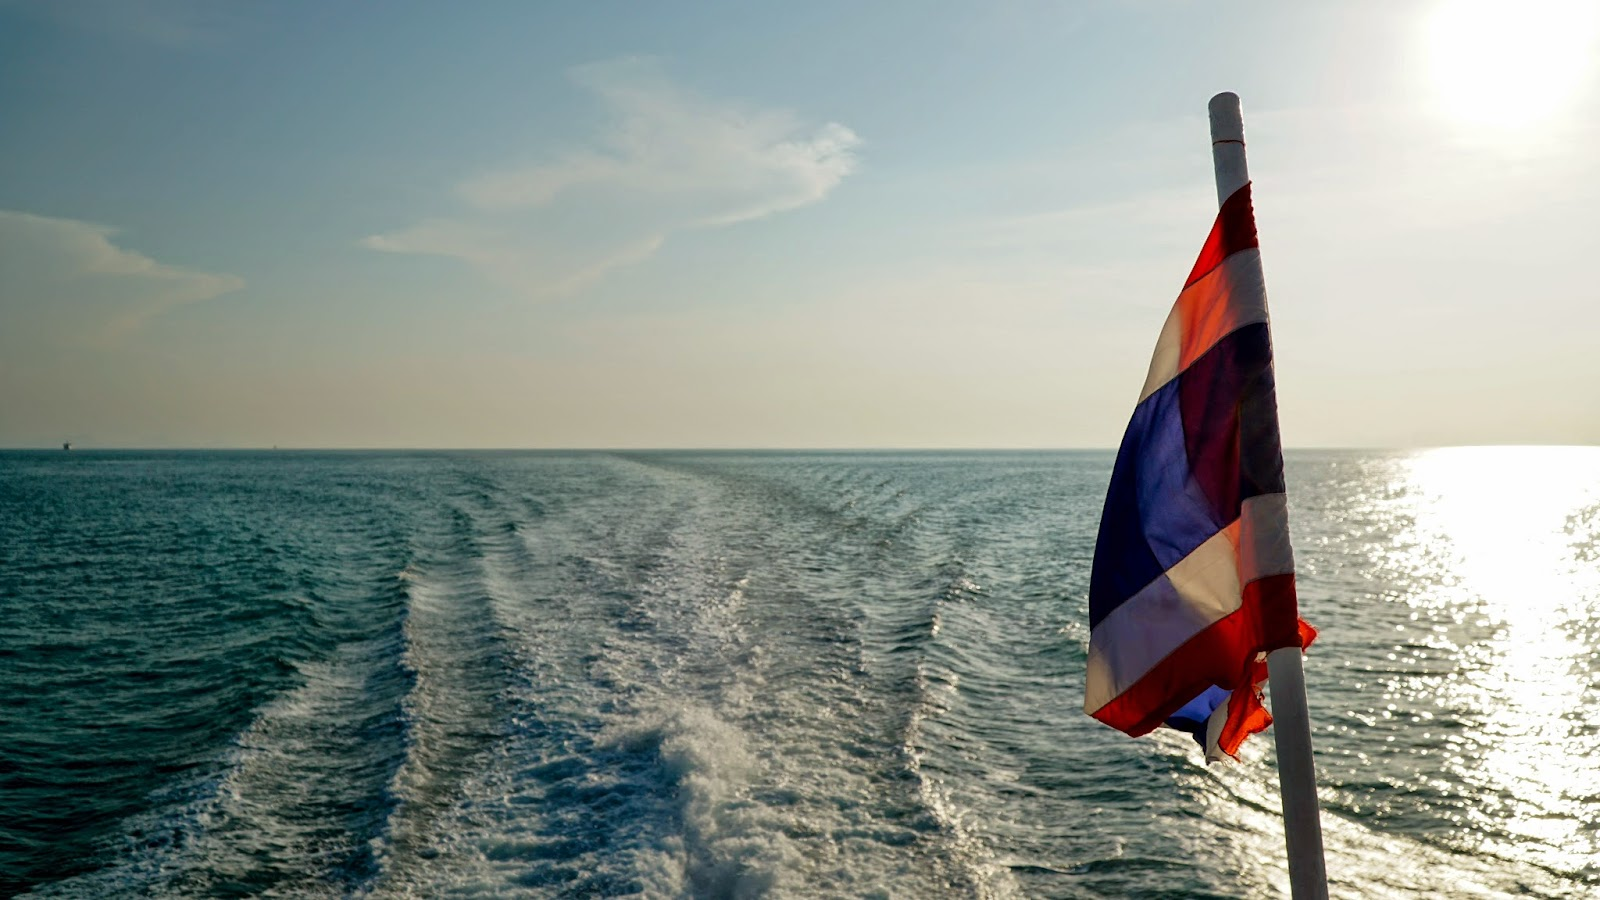 On the way to Koh Tao